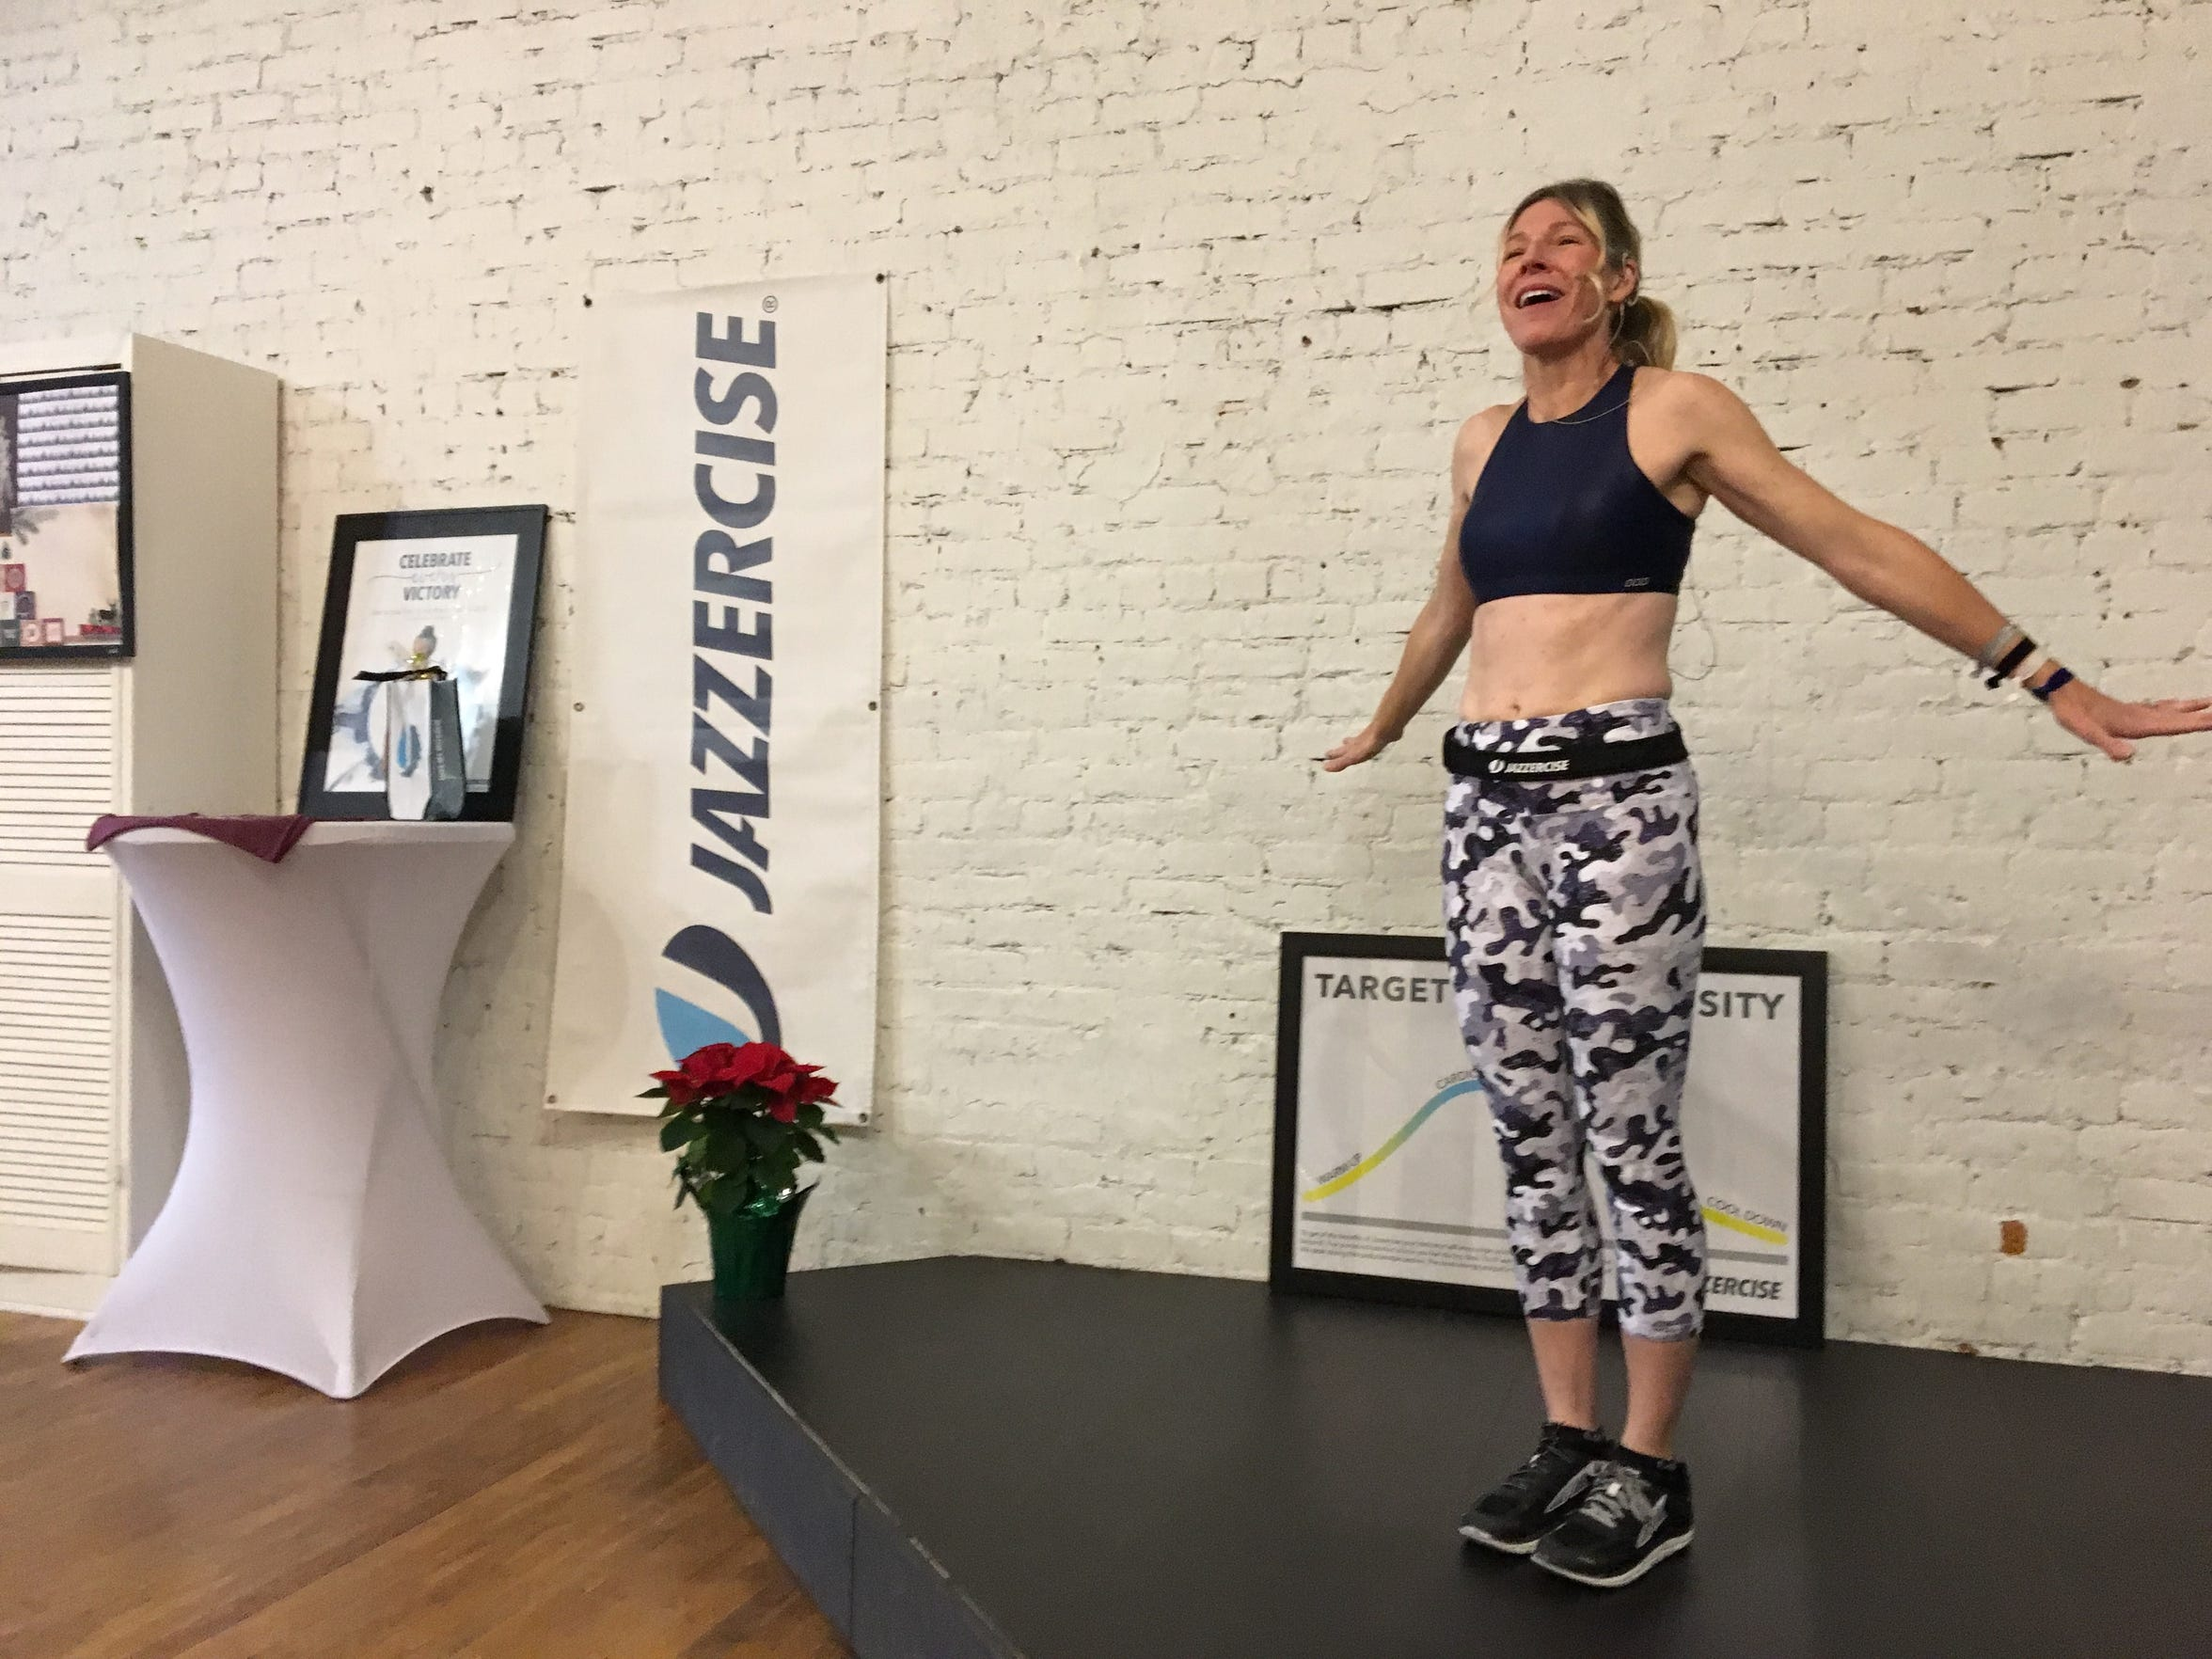 Instructor Maryann Acuff teaches at Jazzercise Staunton at Queen City Place on 12 Byers Street in Staunton on Friday, Dec. 14, 2018.